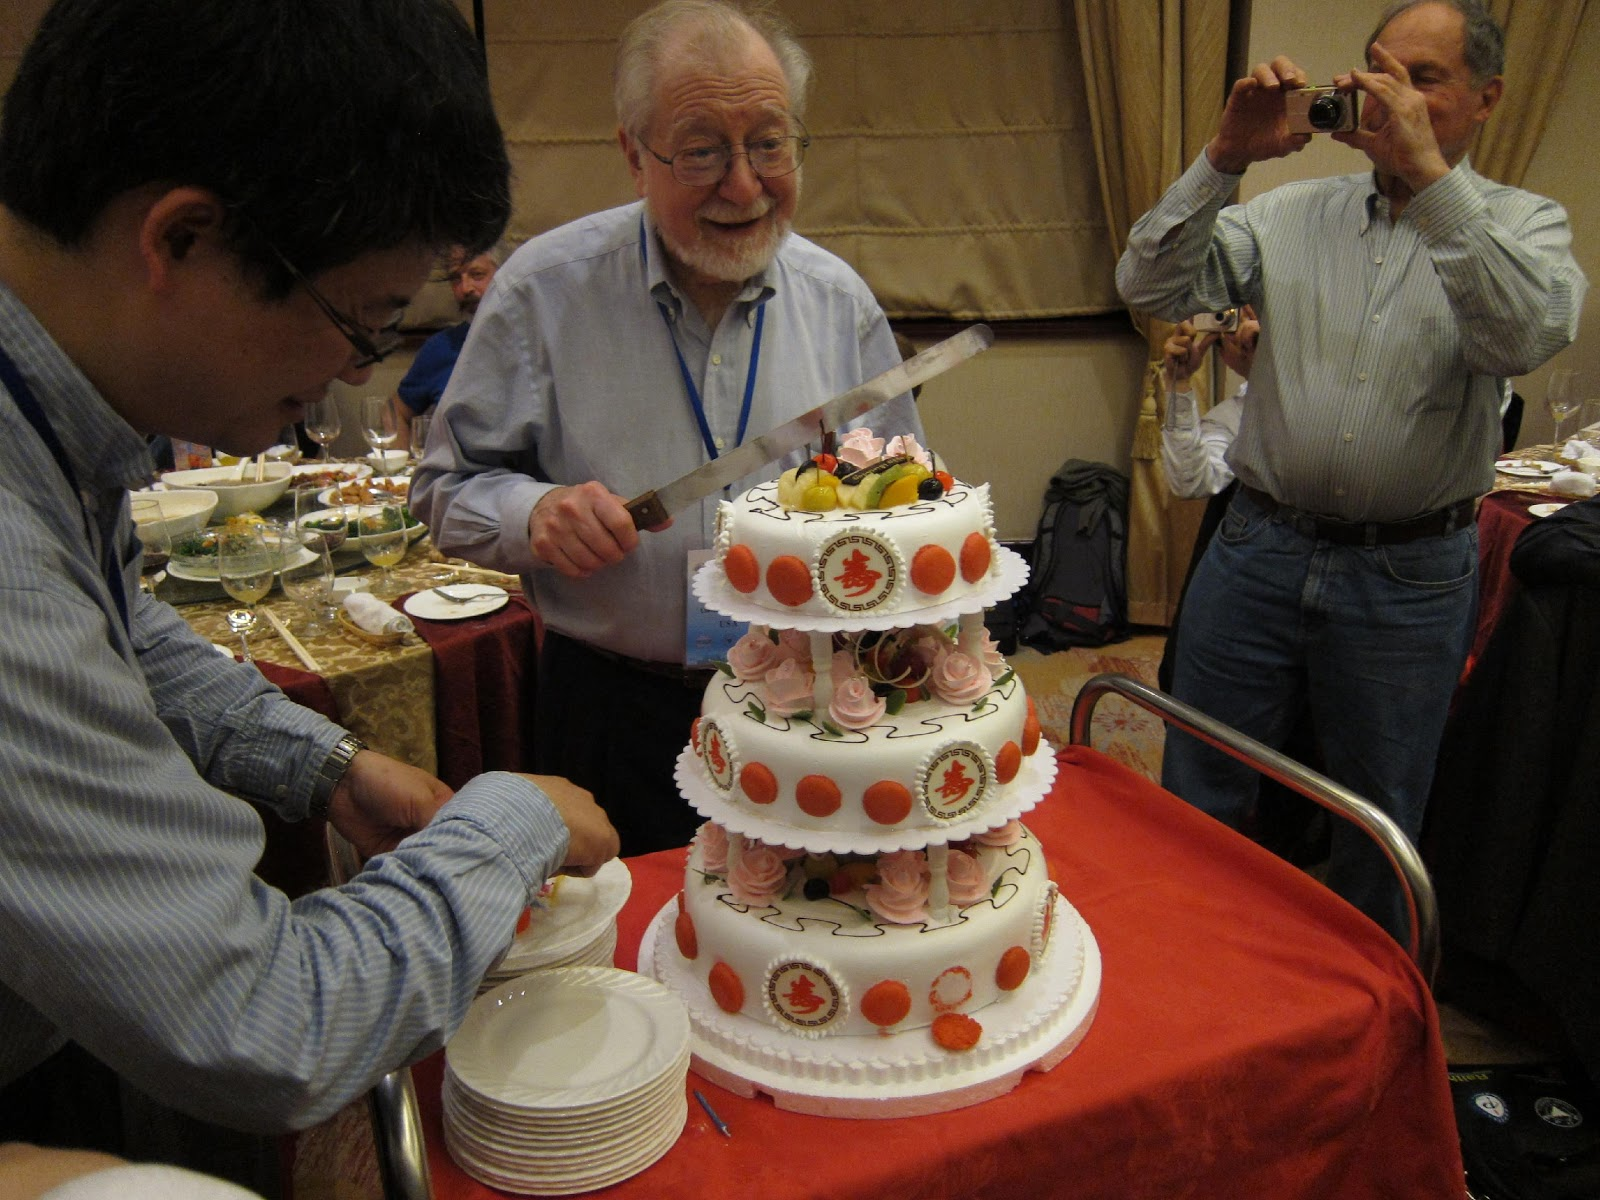 Steve Berry, cutting the cake on the occasion of his 80th birthday, in Hangzhou, China, April 2011.